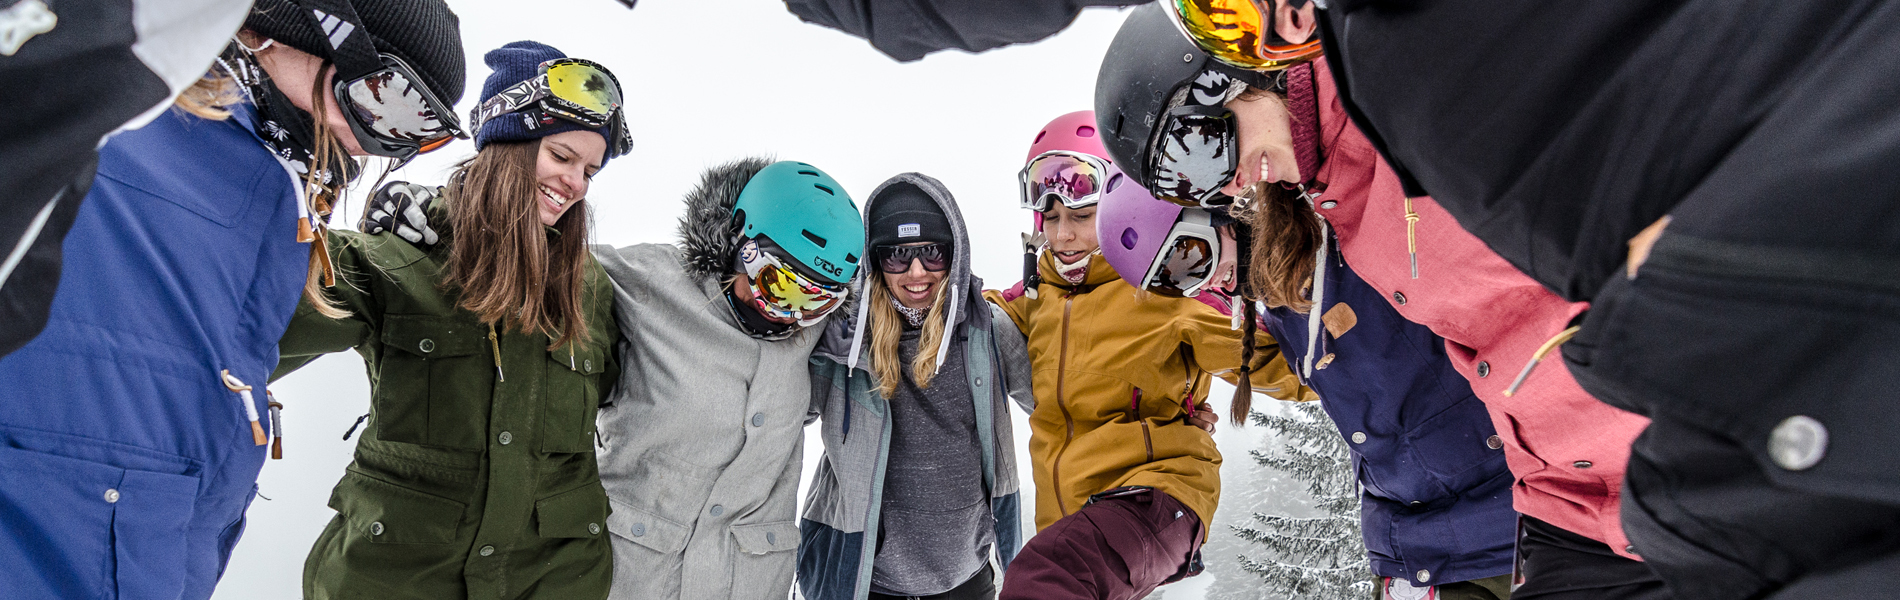 Girls Shred Session Alta Badia - 03.03.2018